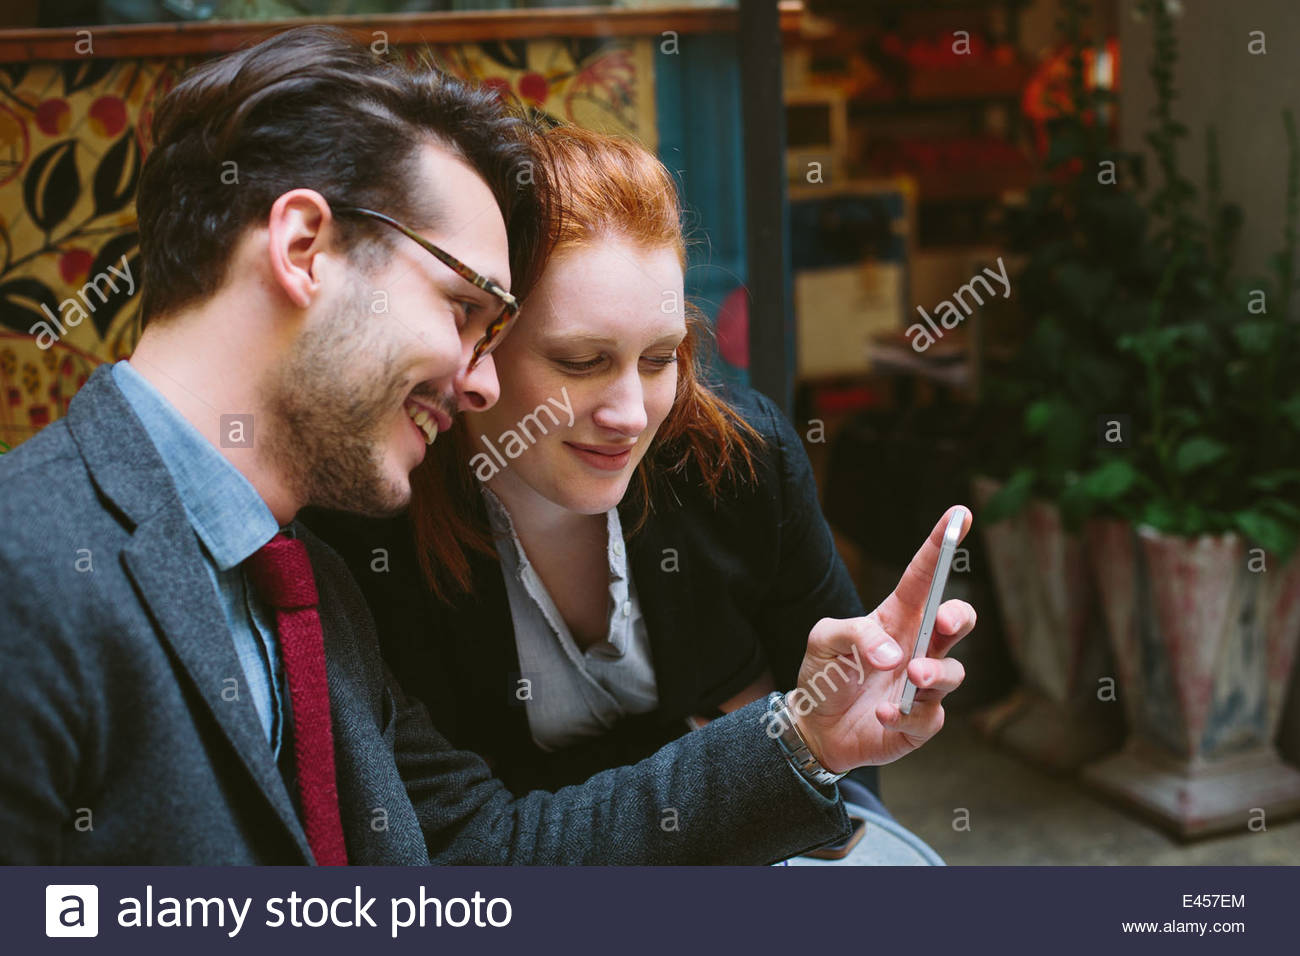 Couple looking at smartphone - Stock Image